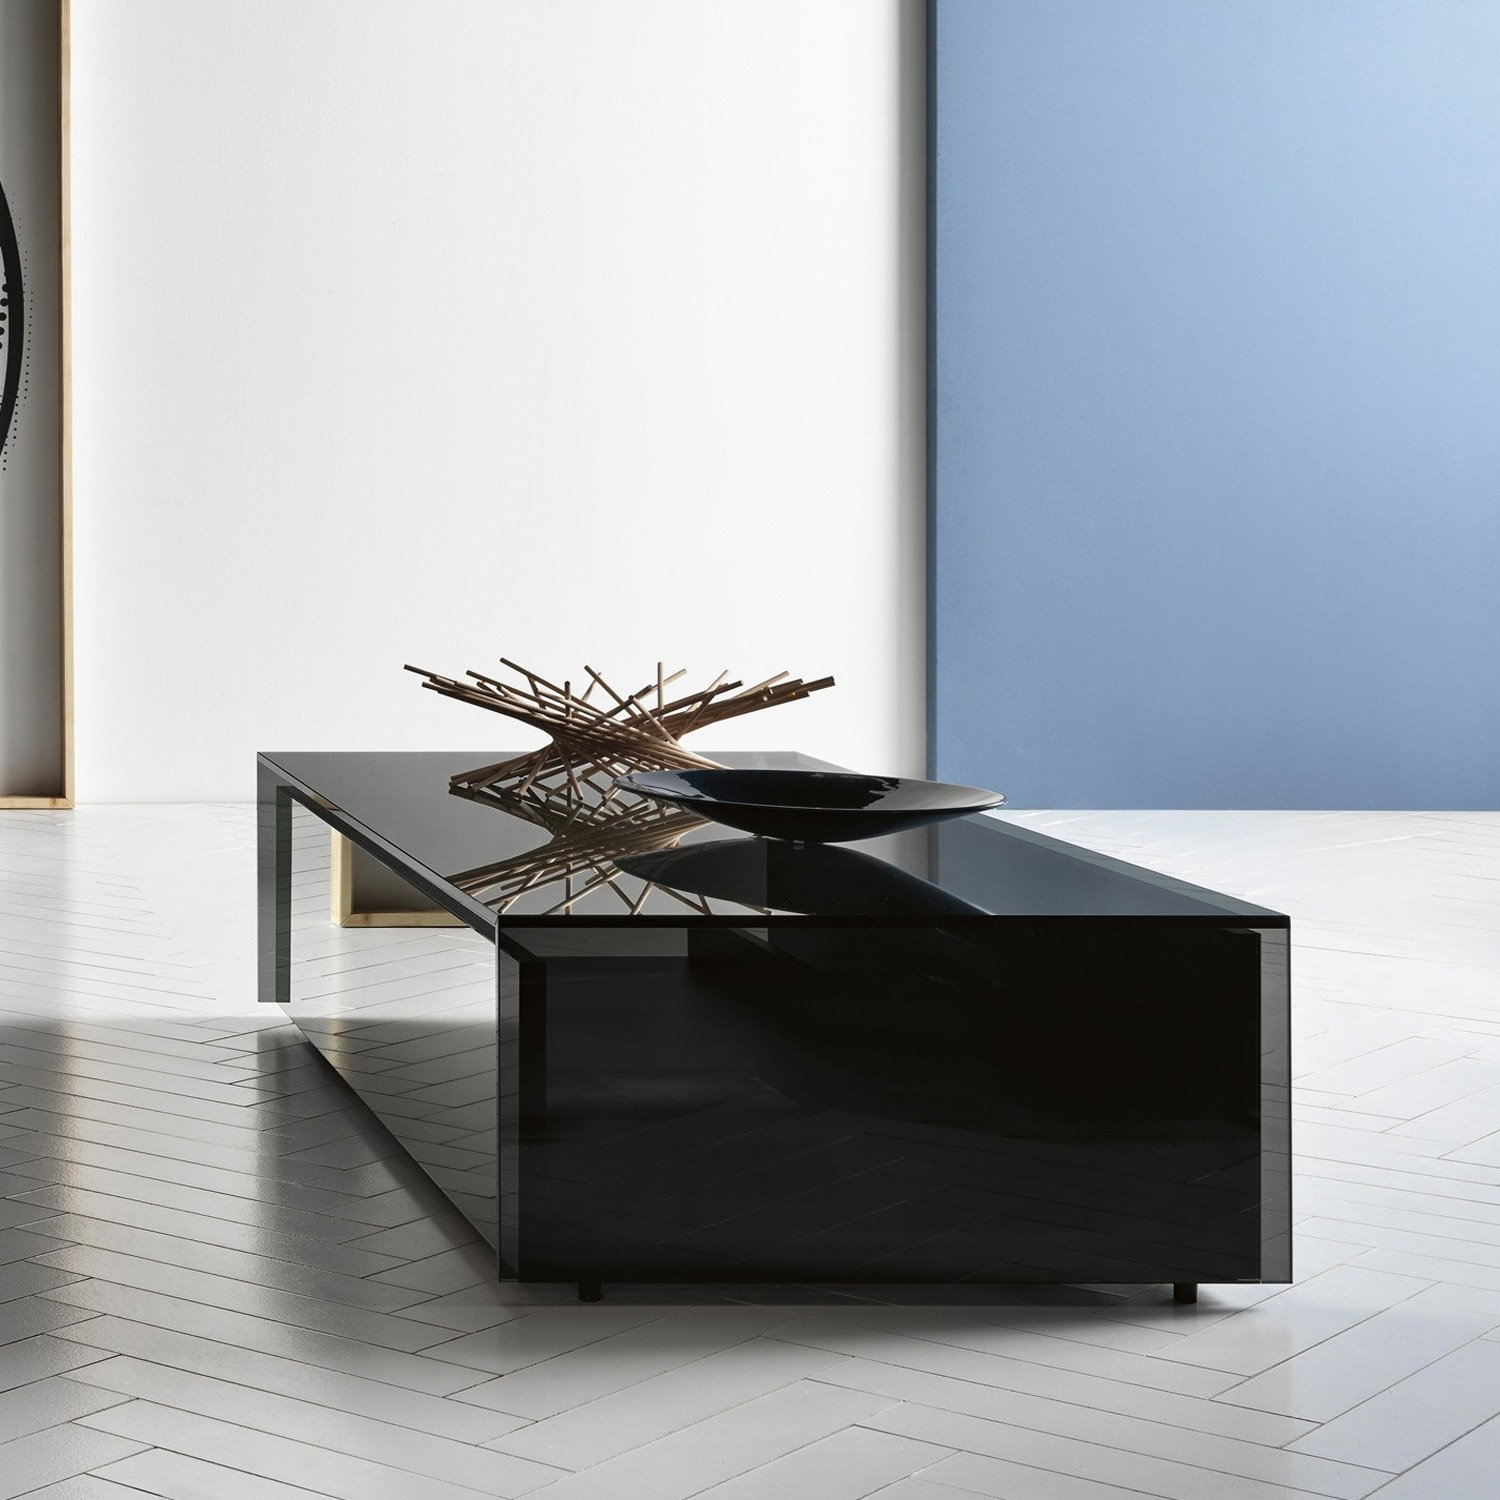 Glass Coffee Tables Uk Only: Ghotam Smoked Glass Coffee Table With 1 Drawer